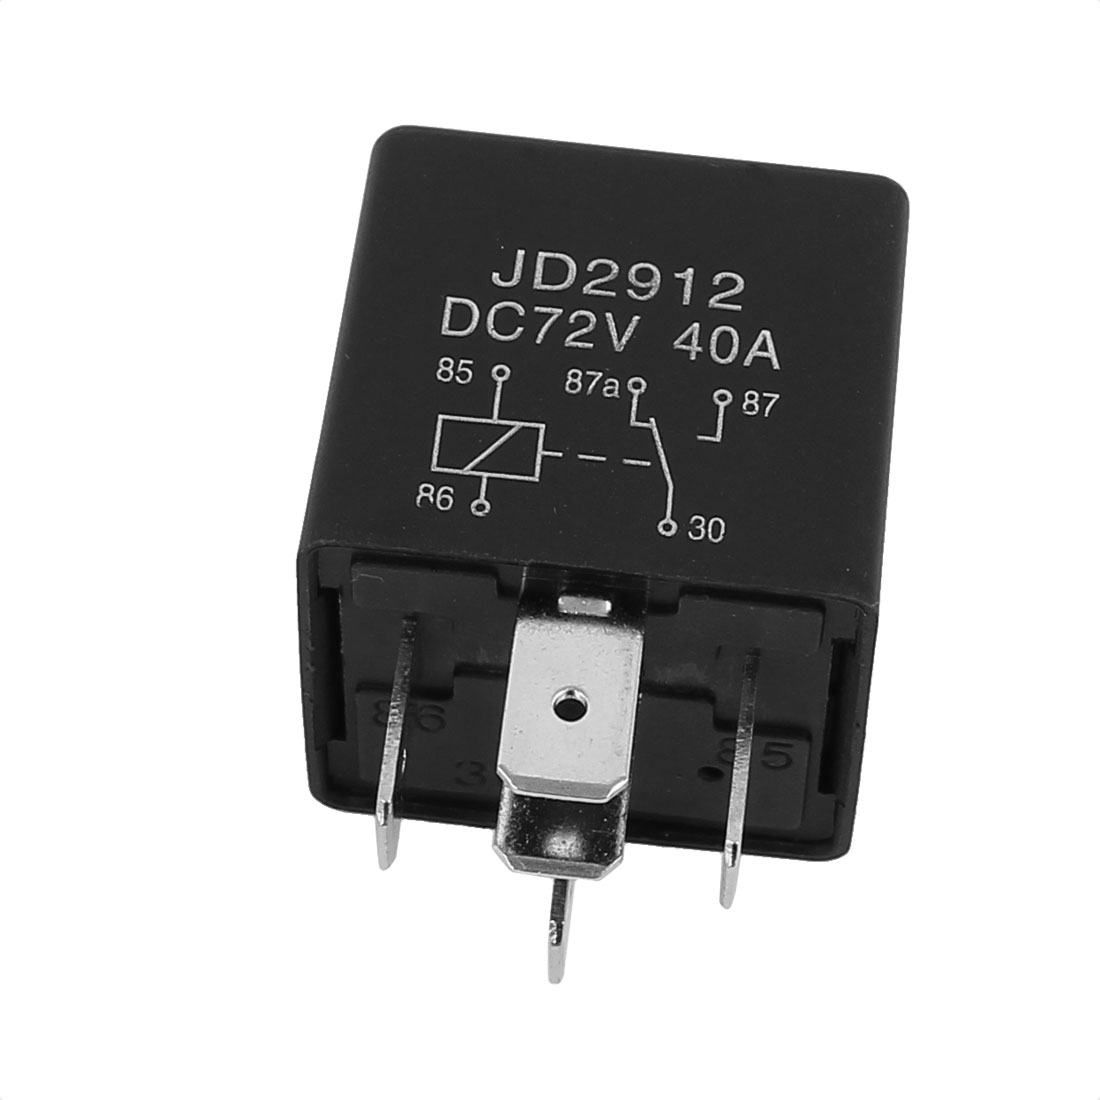 JD2912 DC 72V 40A 5 Pins SPST Vehicle Car Security Power Relay 10pcs - image 1 of 3